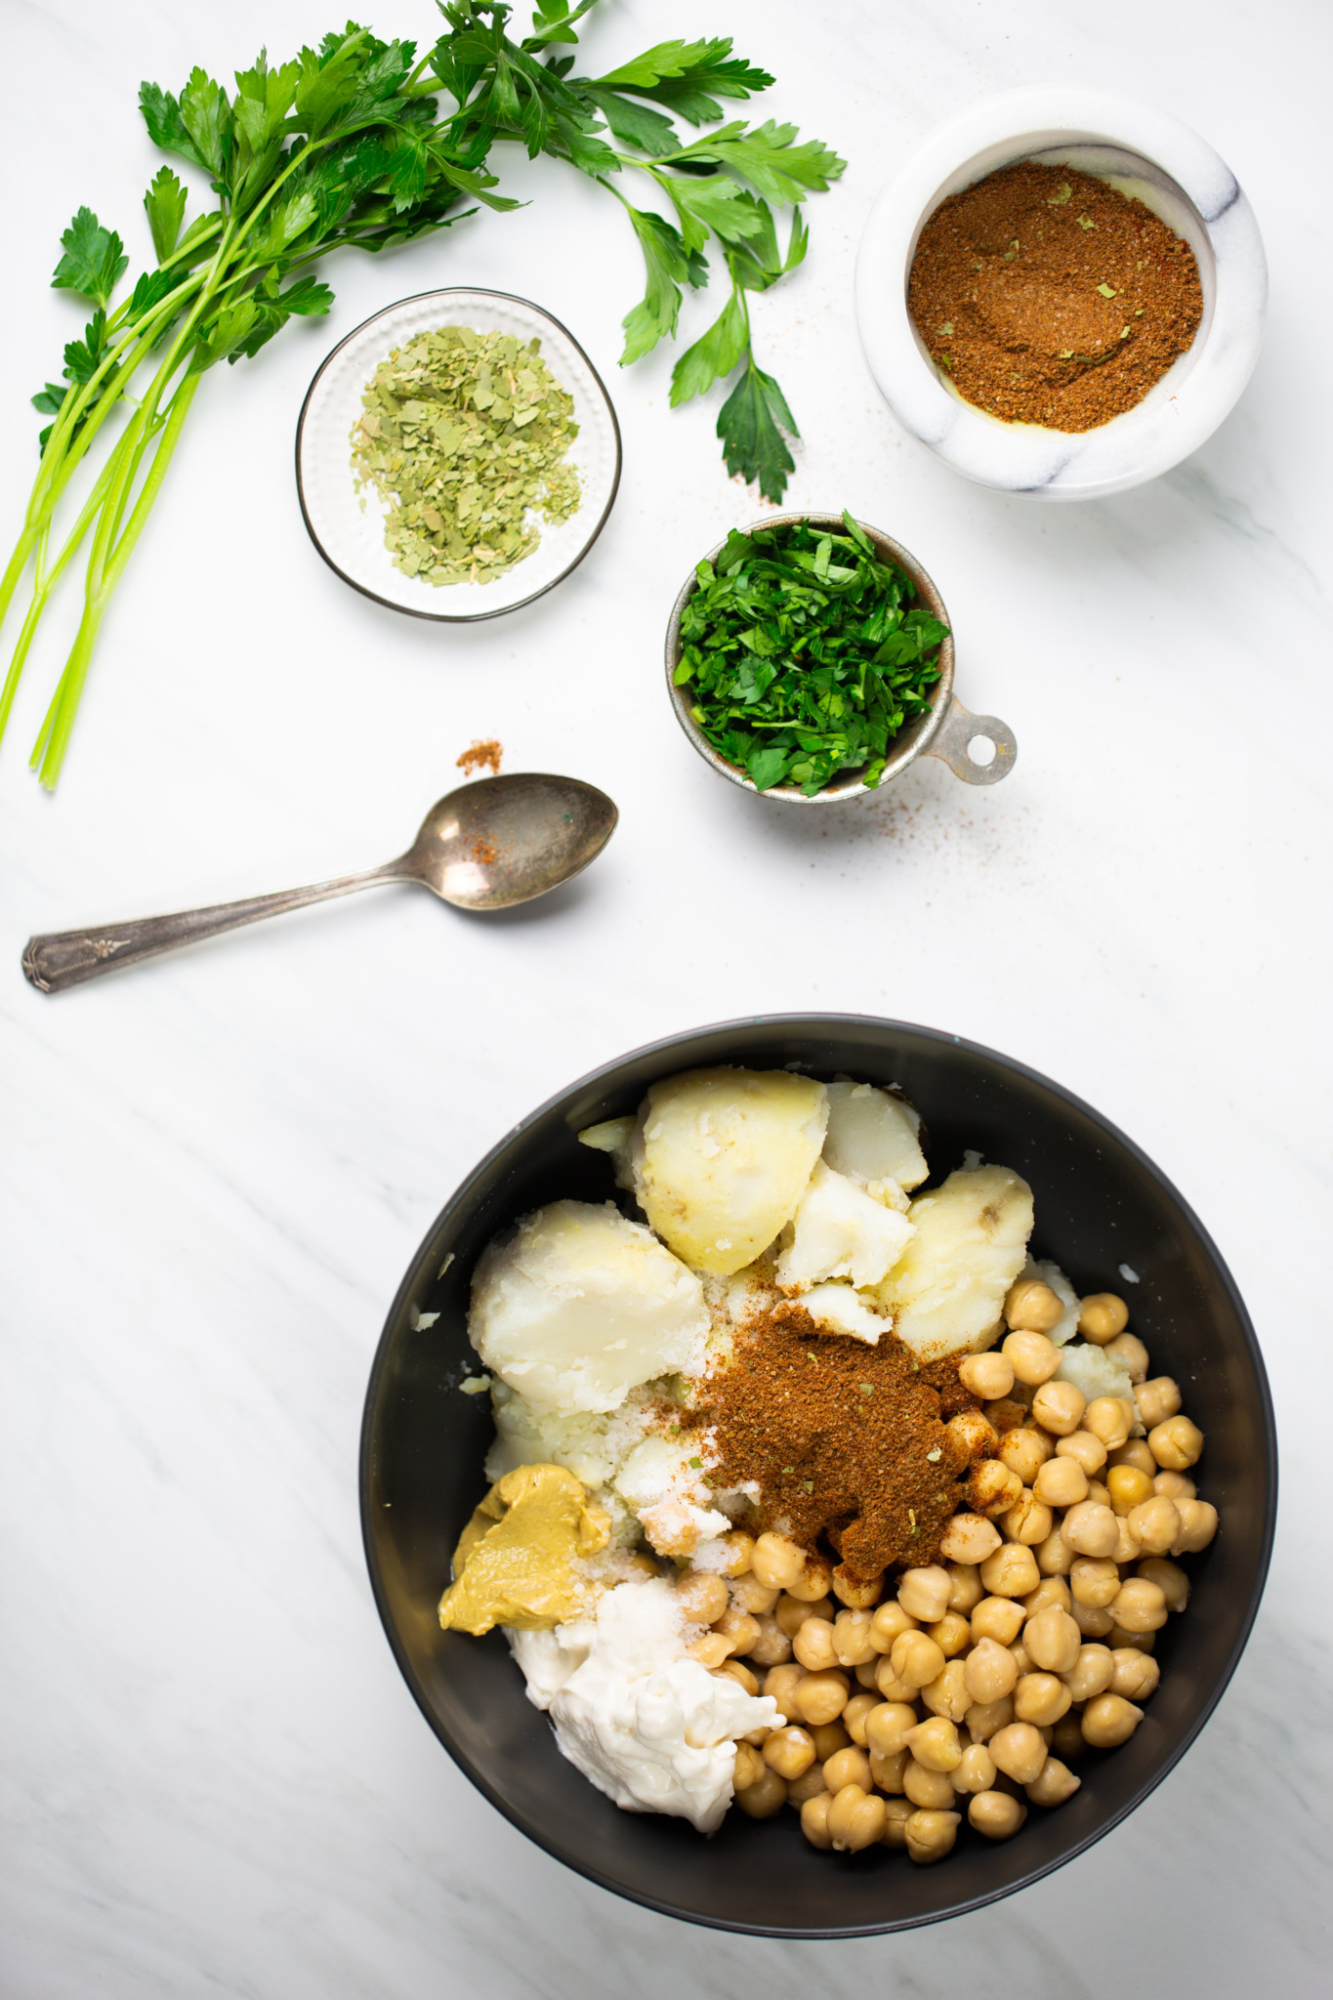 a bowl with chickpeas, potatoes and herbs